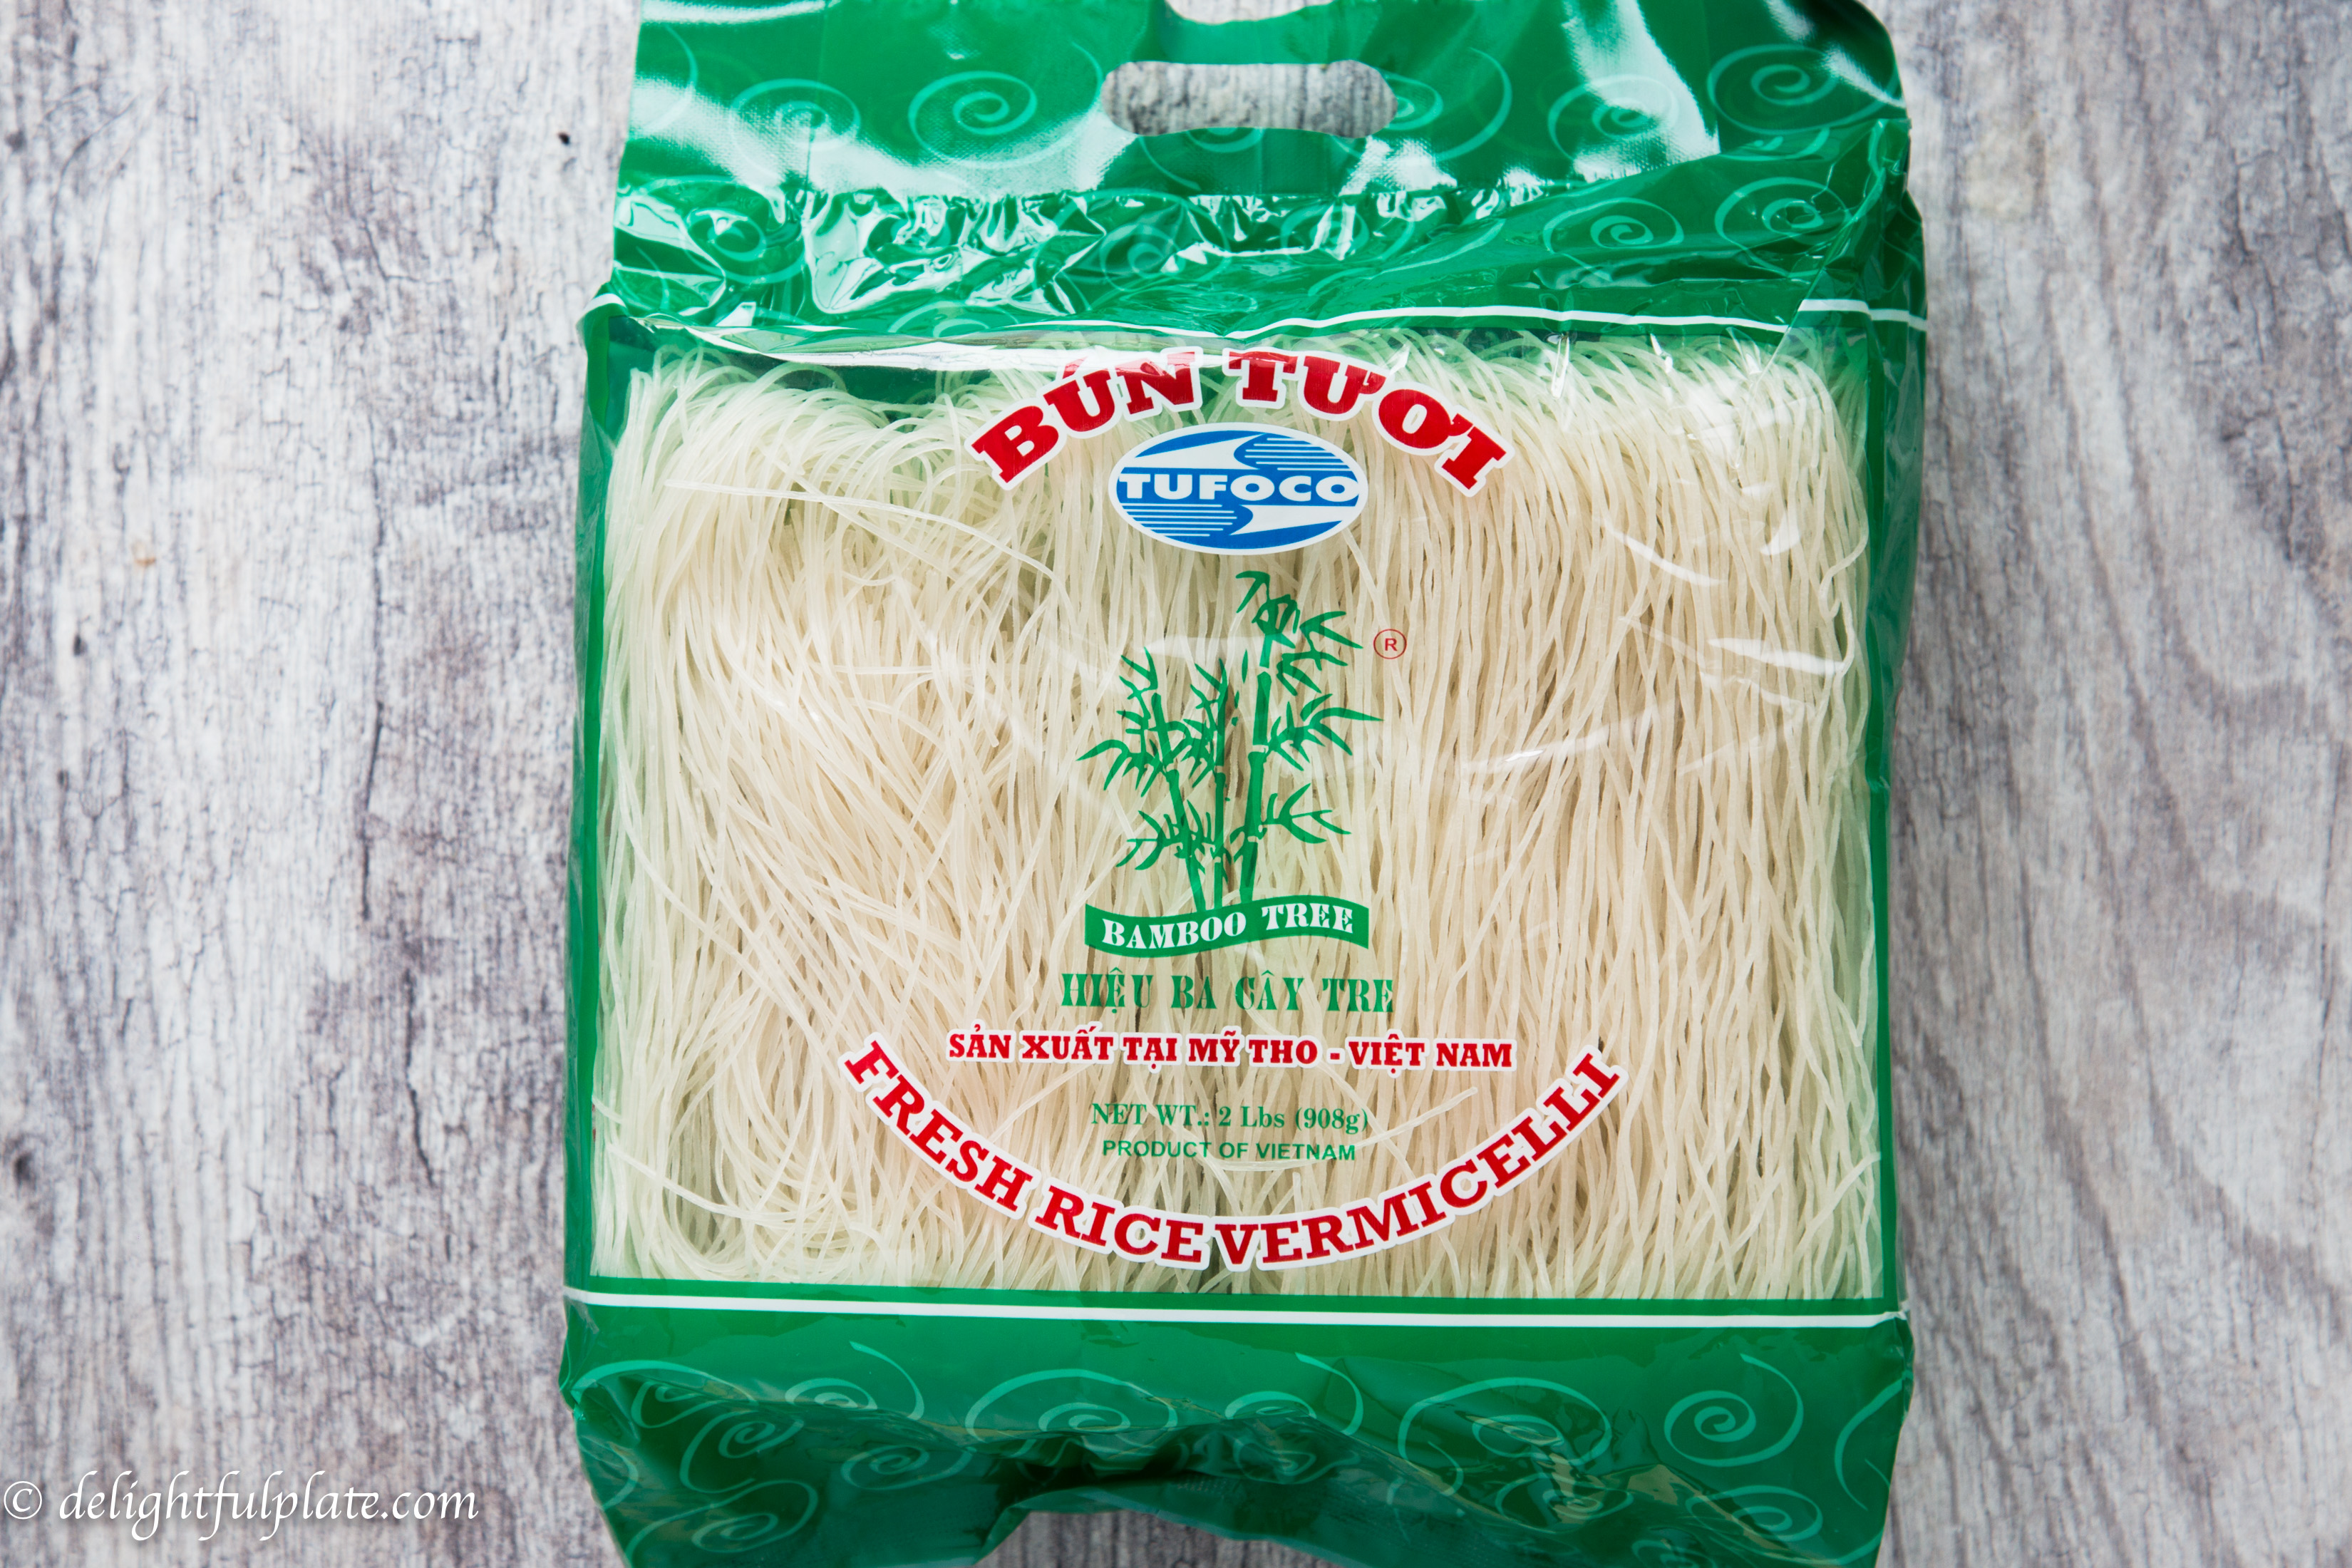 Bamboo tree (Ba Cay Tre) vermicelli noodle brand.